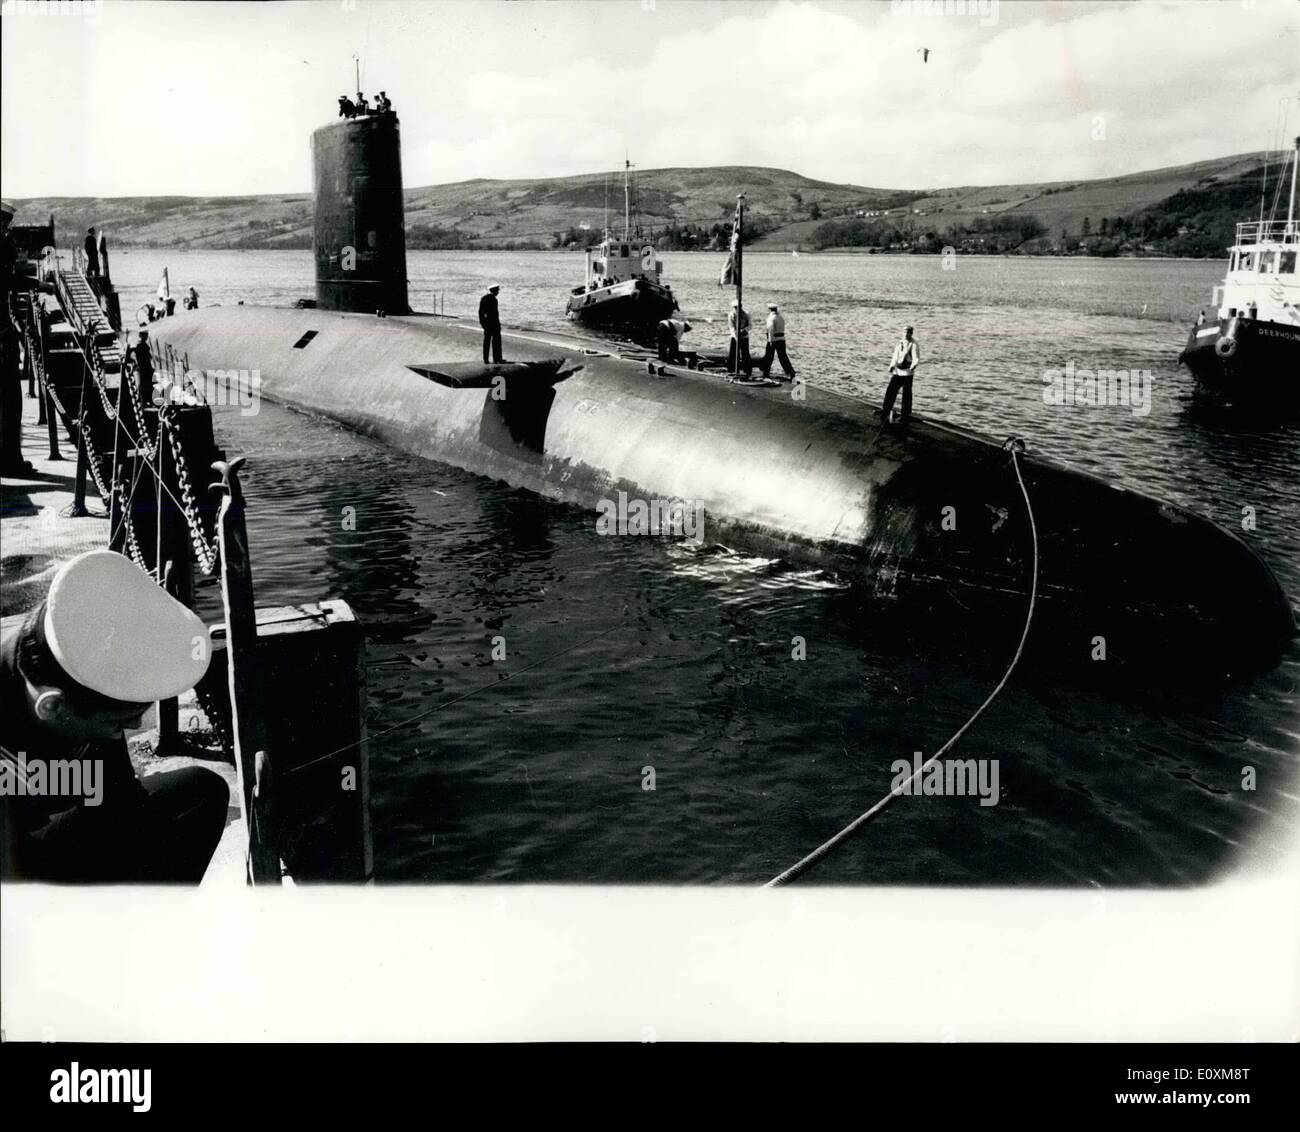 Apr. 04, 1967 - Underwater From Singapore: The nuclear-powered submarine Valiant, 3,500-tons, arrived yesterday at Faslane, Gare Lech, Dunmartonshire, yesterday, at the end of a 12,000-mile underwater voyage from Singapore - a British record. Photo shows The nuclear submarine H.M.S. Valiant, pictured yesterday on her arrival at Faslane, Gare Loch, Dunbartonshire. - Stock Image